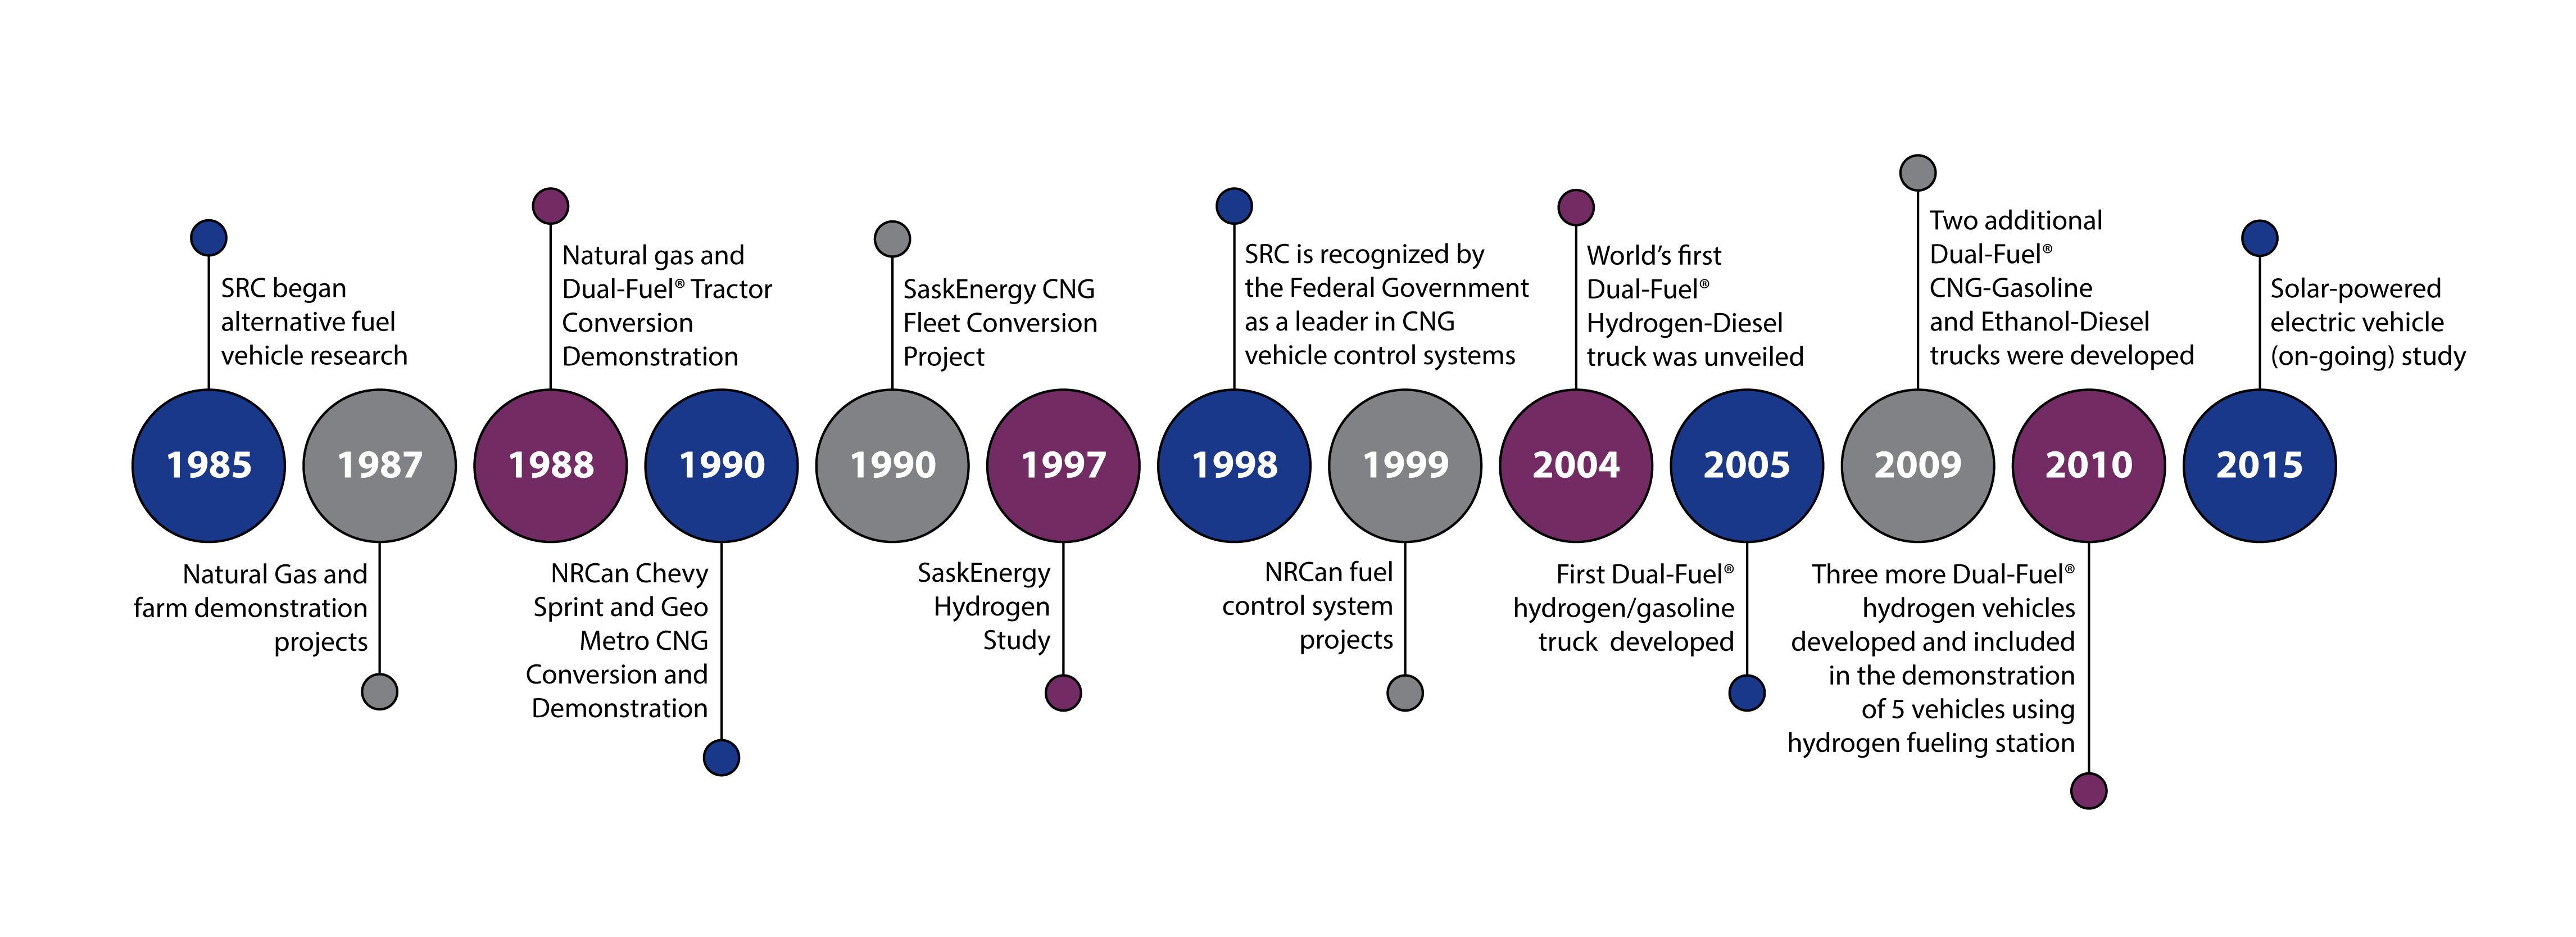 src alternative fuels projects timeline